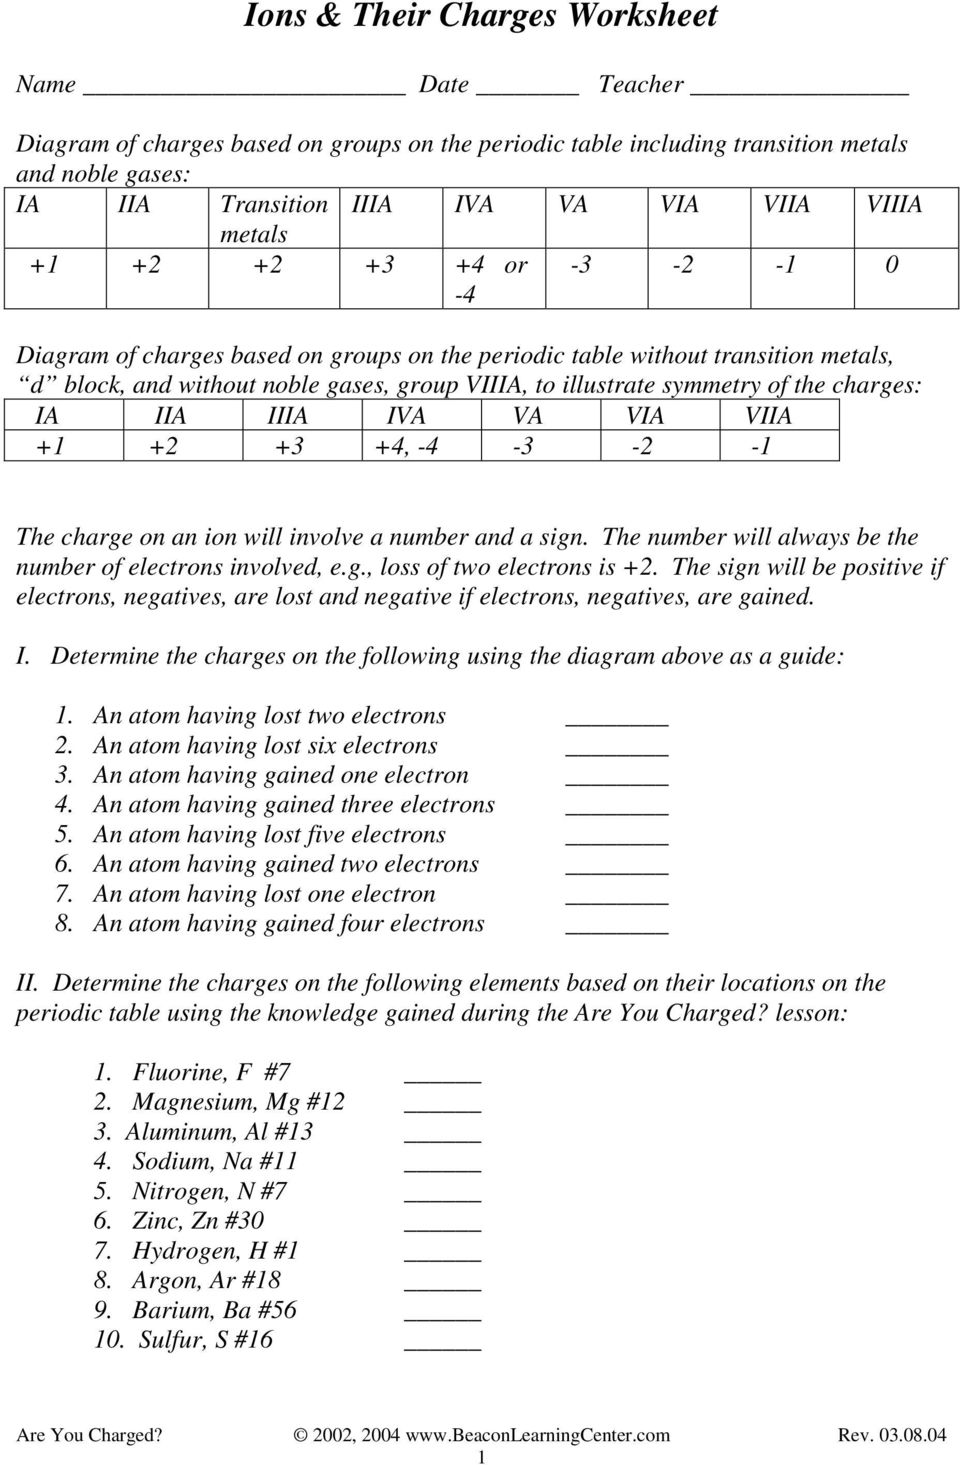 Ions their charges worksheet pdf charges ia iia iiia iva va via viia 1 2 3 urtaz Image collections